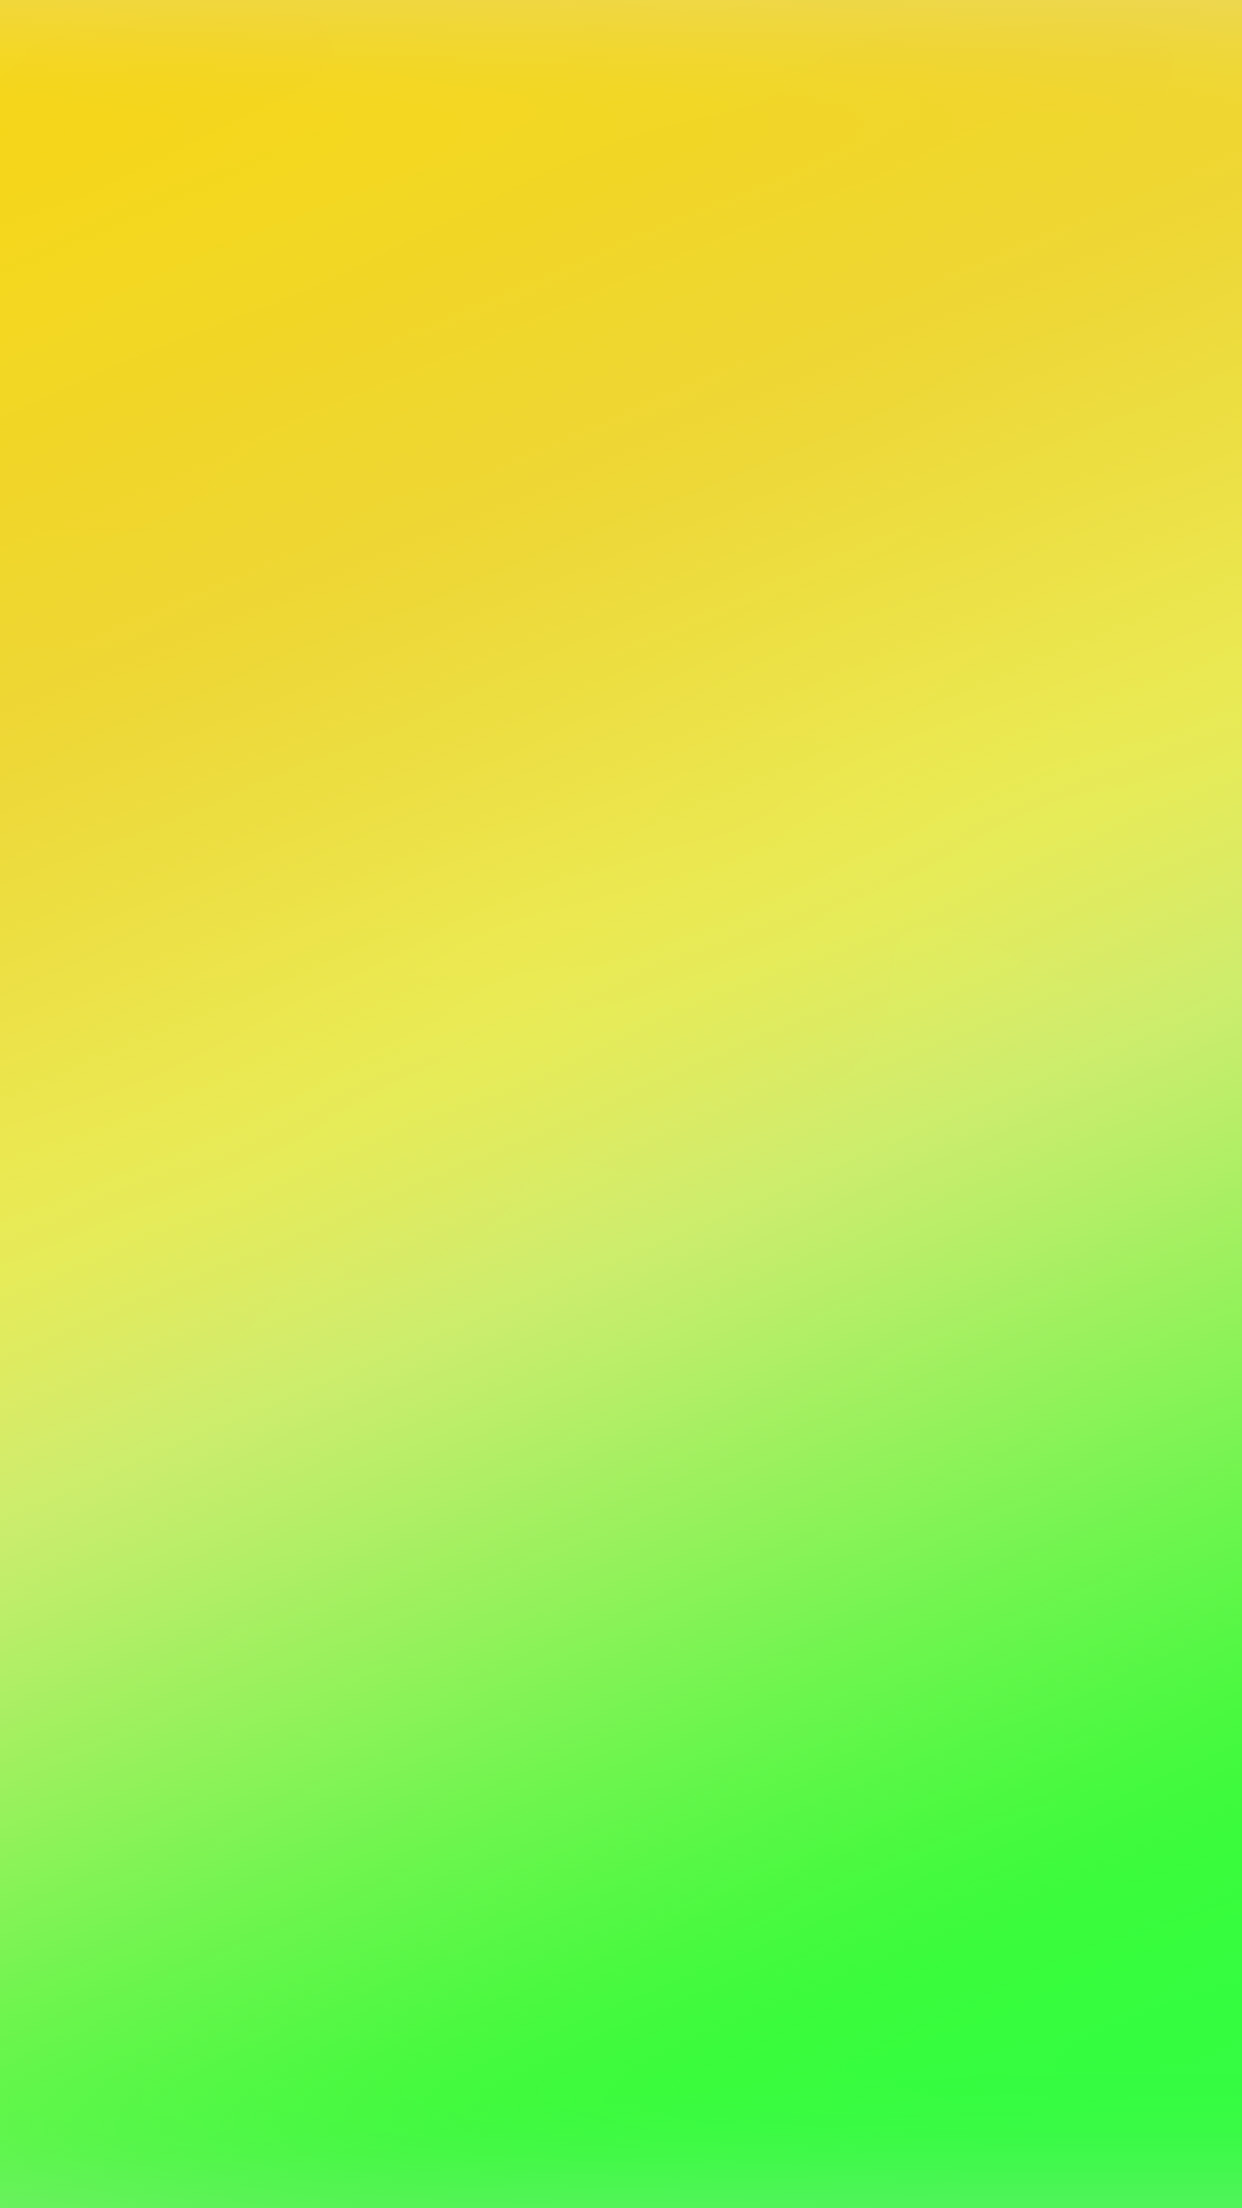 Christmas Wallpaper Hd Cute Papers Co Iphone Wallpaper Sl79 Yellow Green Blur